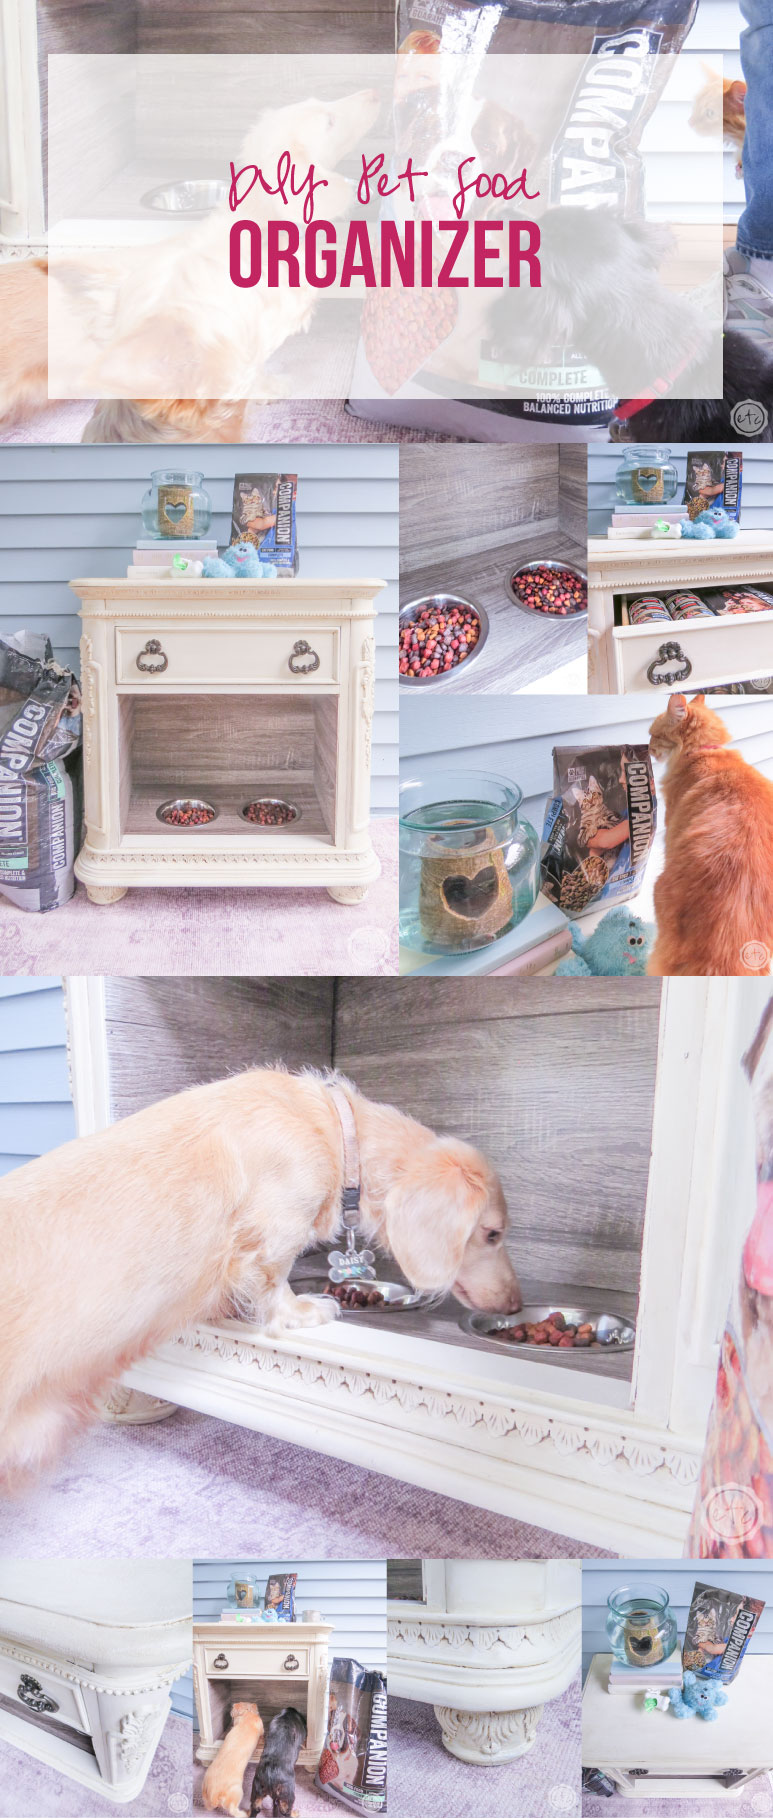 Diy Pet Food Organizer Happily Ever After Etc